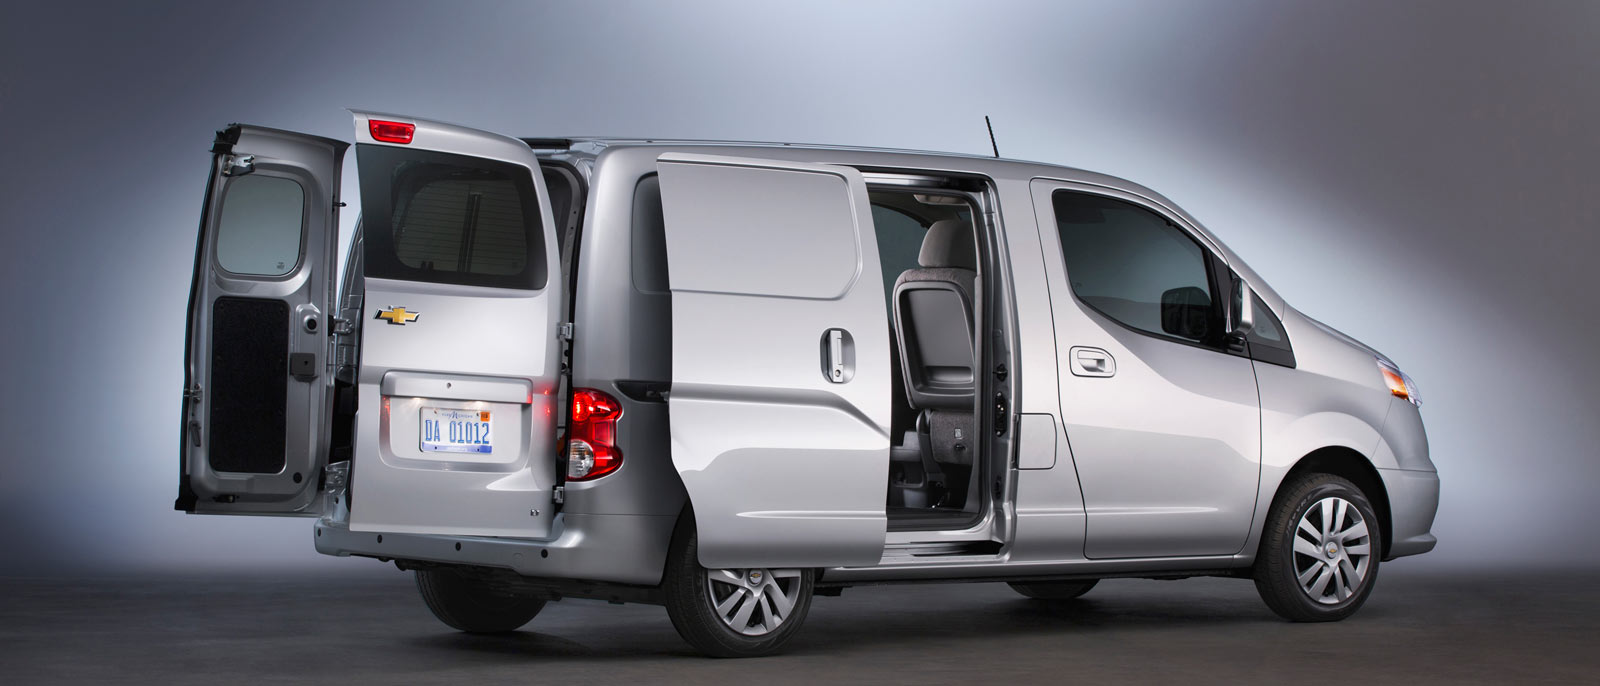 2016 Chevrolet City Express #11